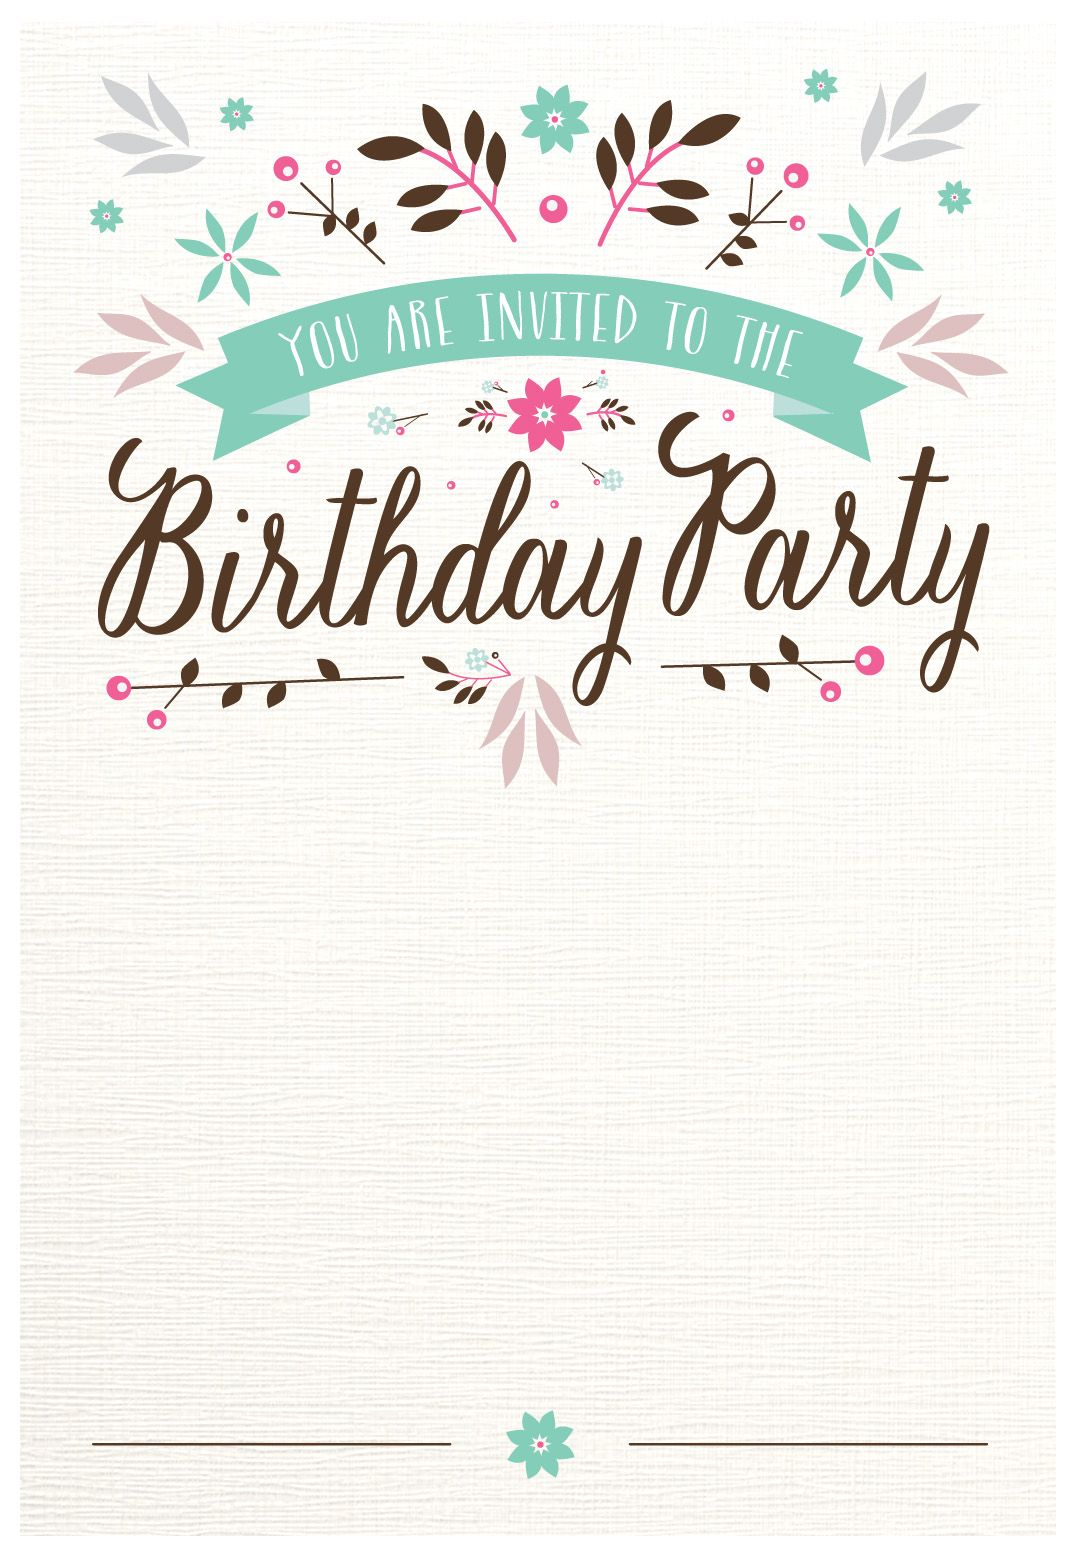 Flat Floral Free Printable Birthday Invitation Template – Where Can I Print Birthday Invitations